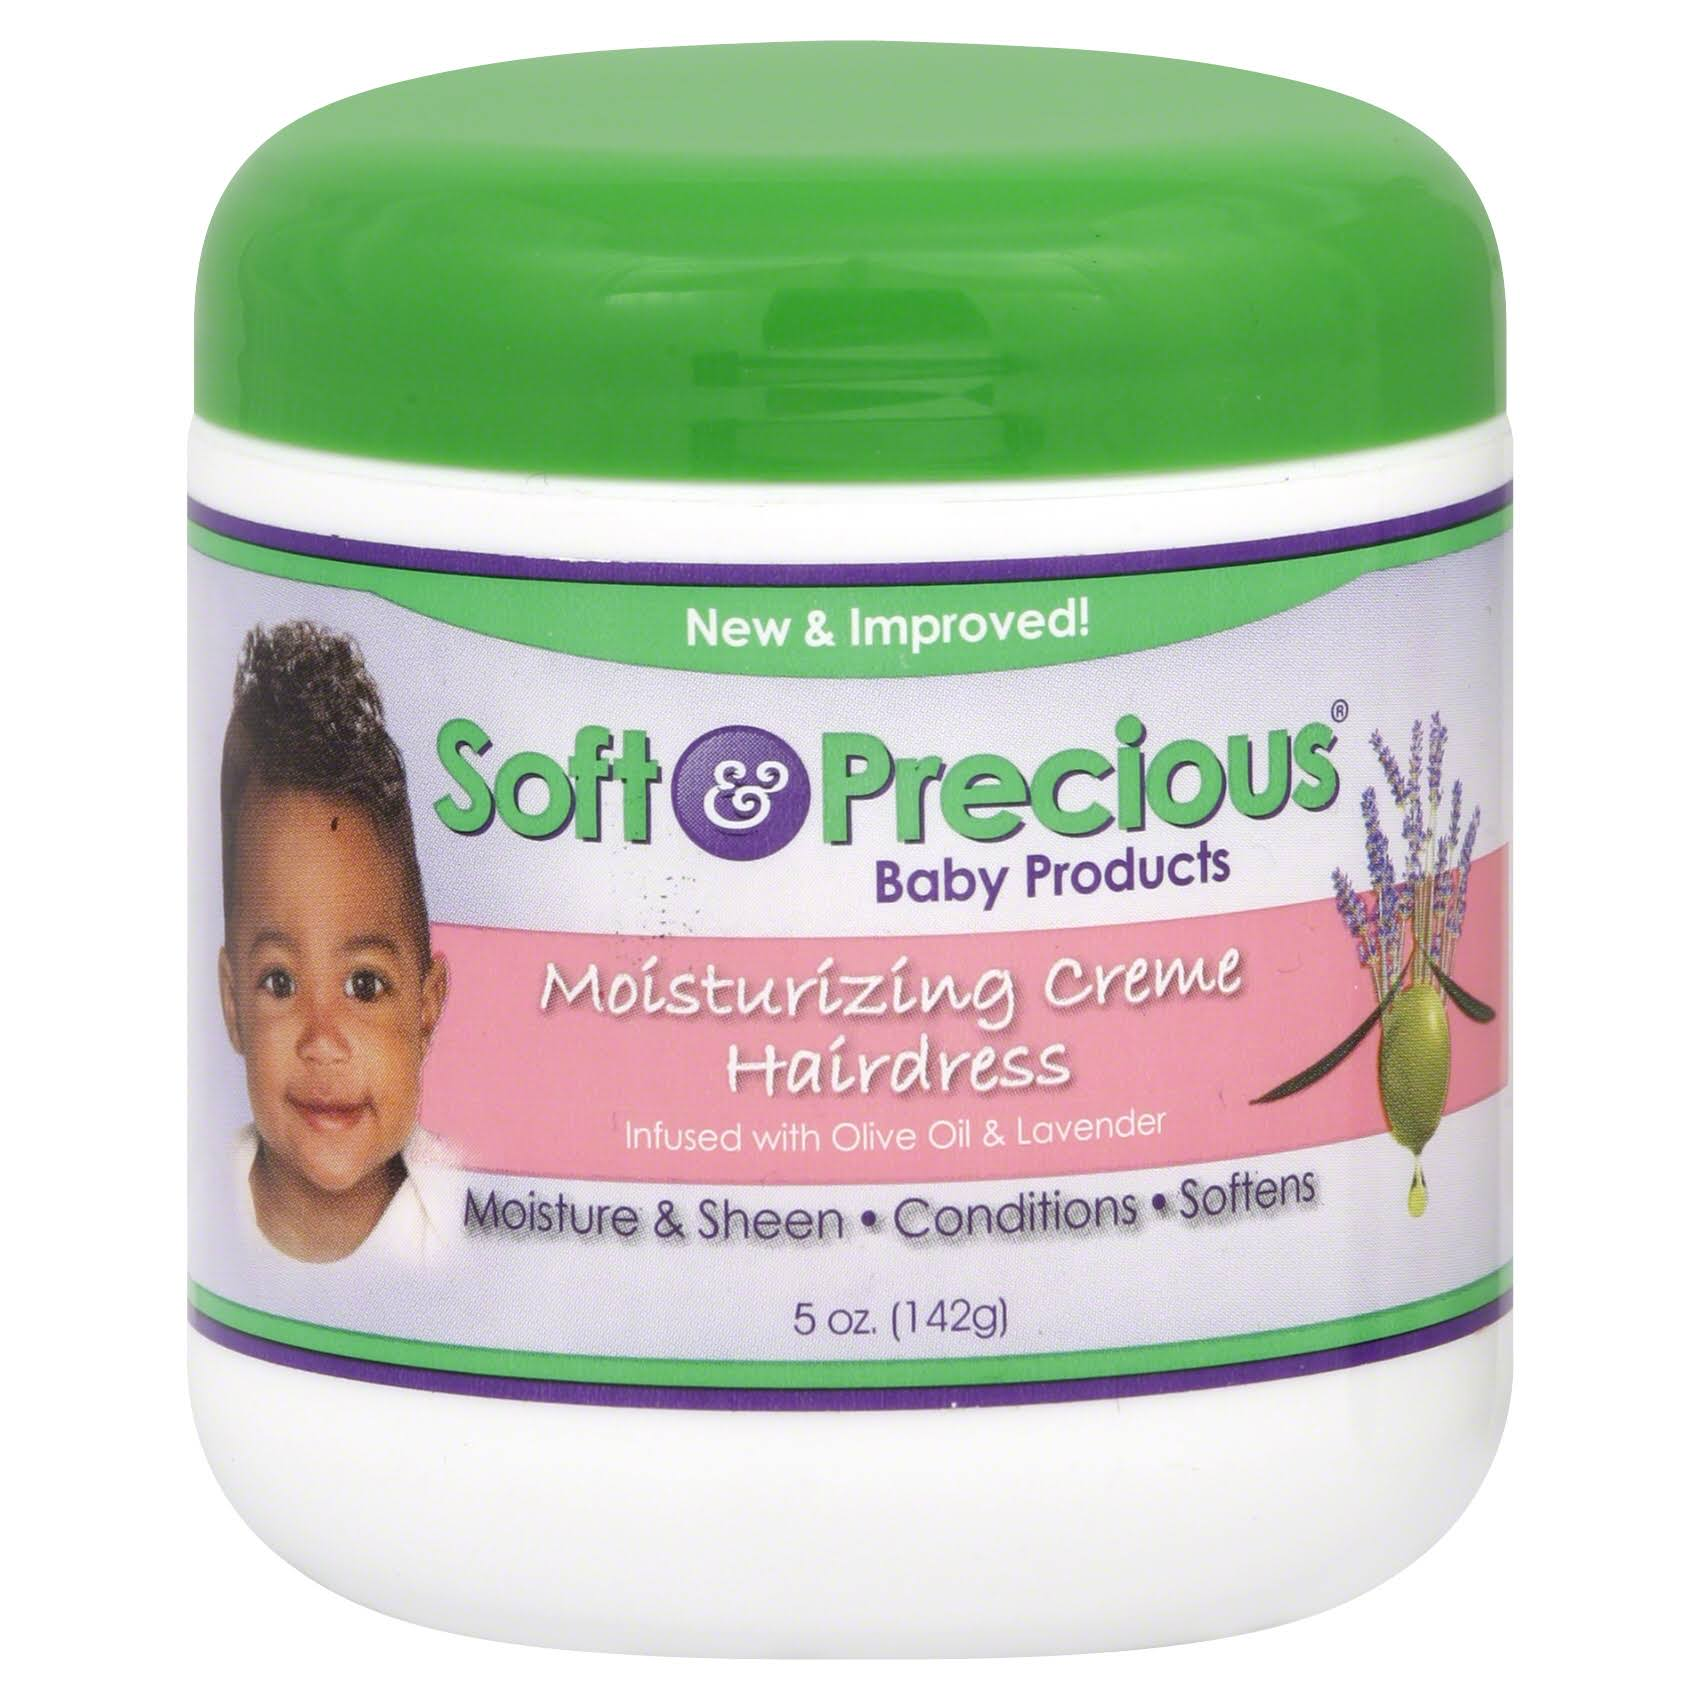 Soft and Precious Baby Products Moisturizing Creme Hairdress - Olive Oil and Lavender, 7.5oz